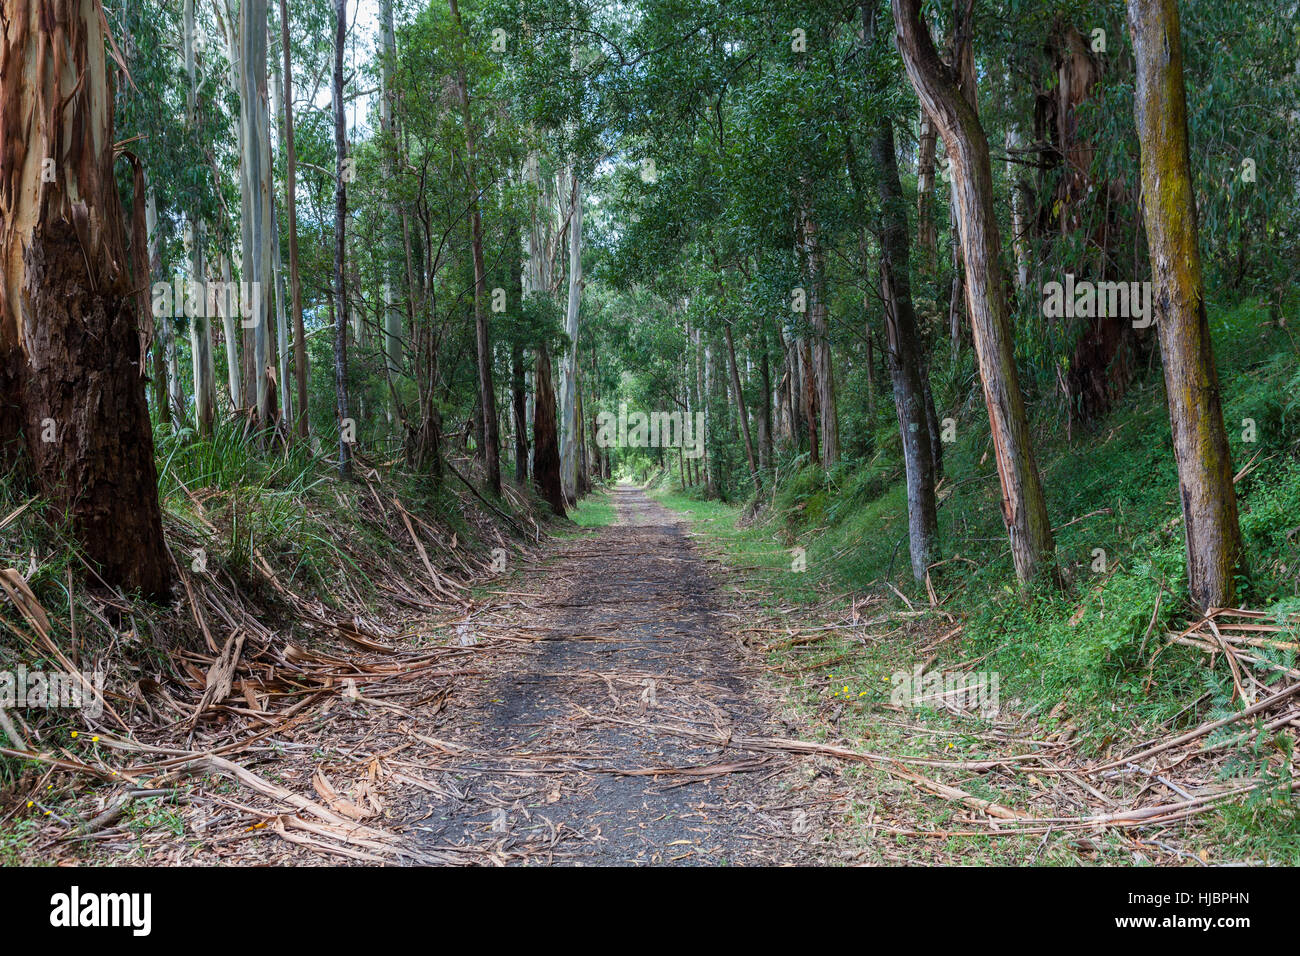 Lonely walking trail in eucalyptus forest, Australia - Stock Image